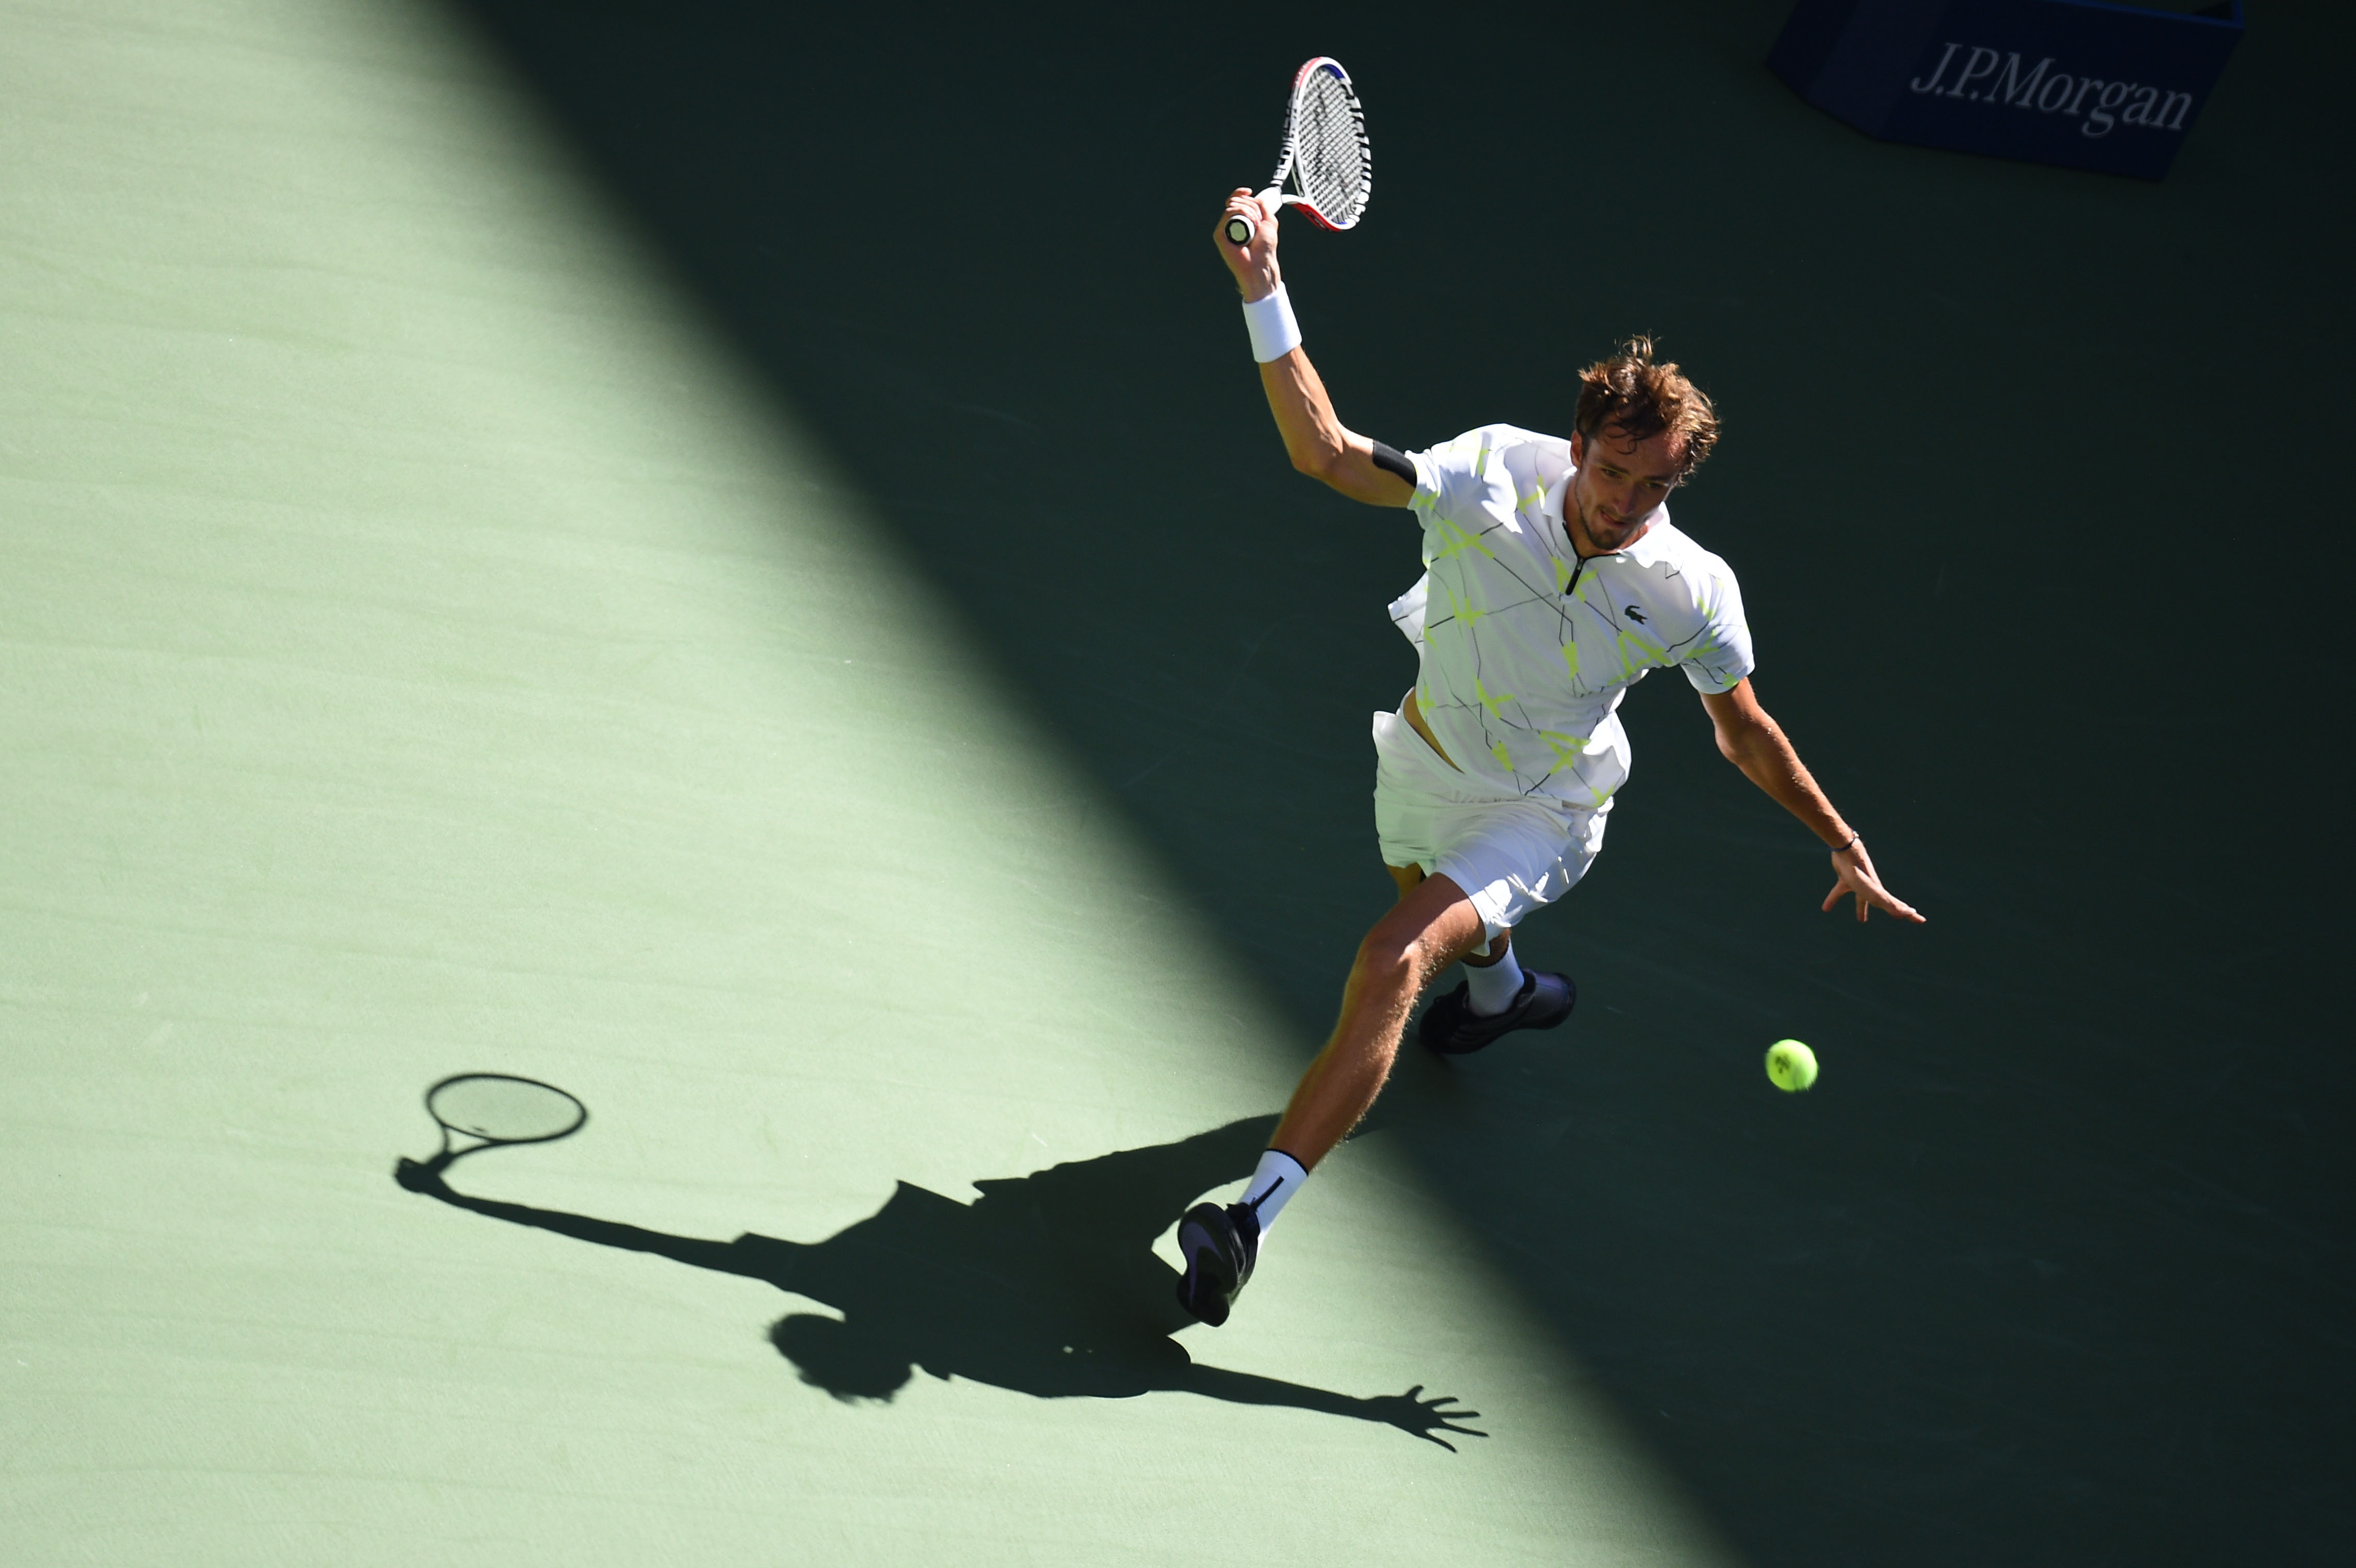 Daniil Medvedev in the light ans shadow at the 2019 US Open